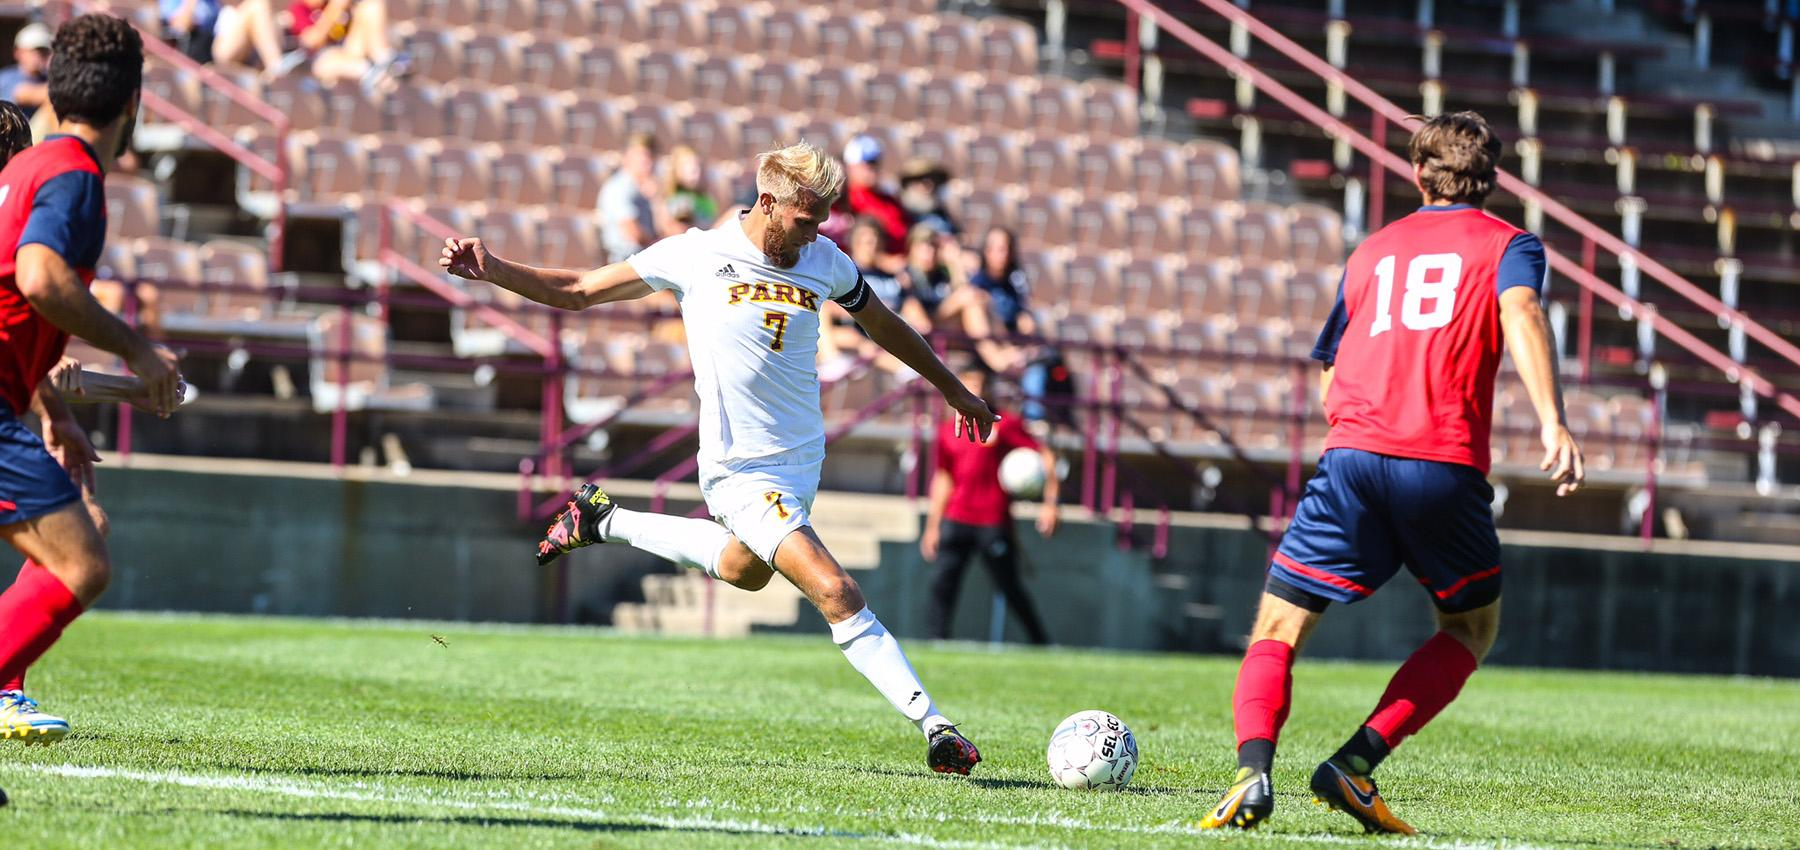 Men's Soccer Held to Second-Straight 1-1 Draw